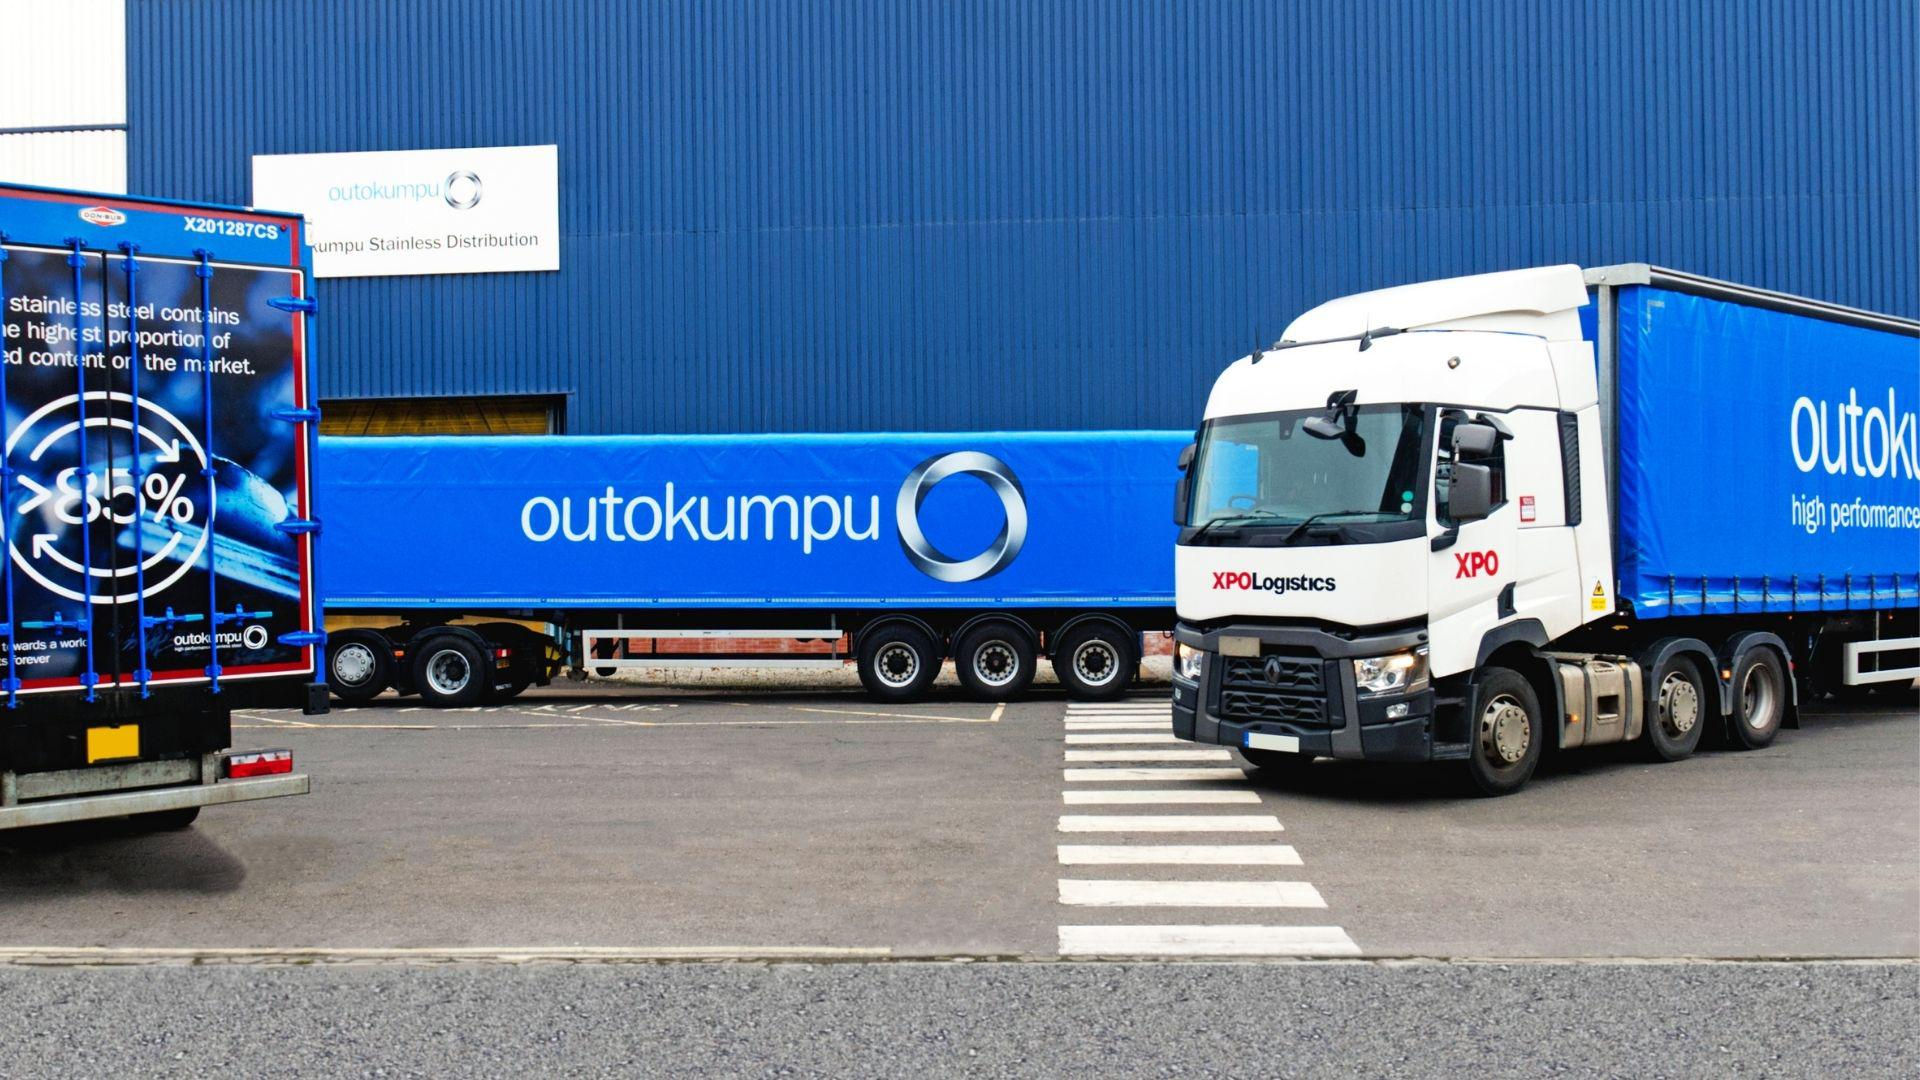 XPO and Outokumpu branded trucks